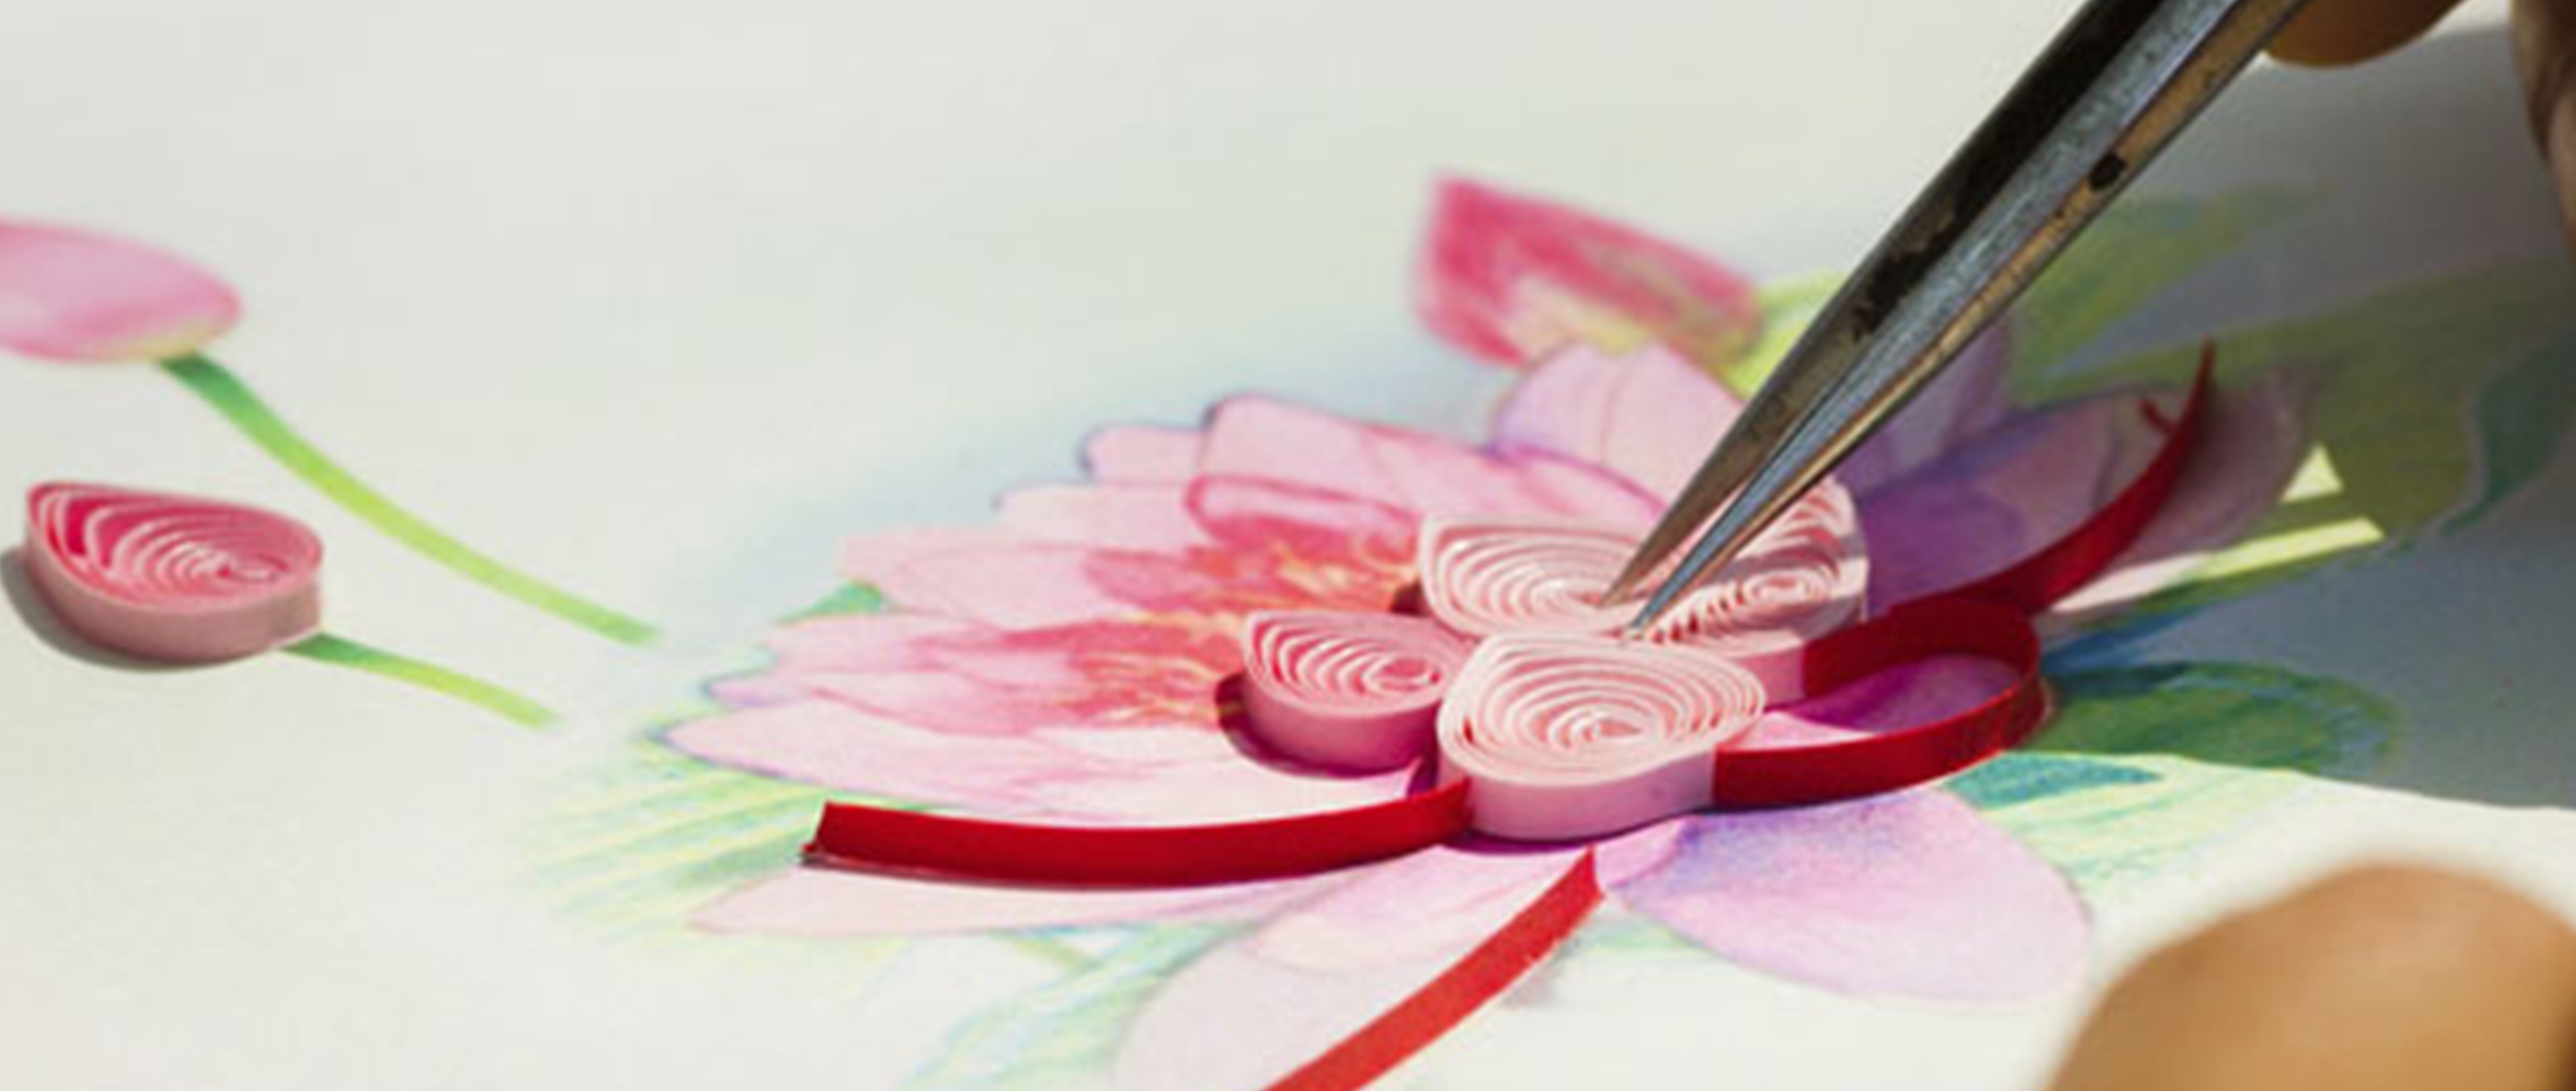 Wholesale quilling cards artwork header